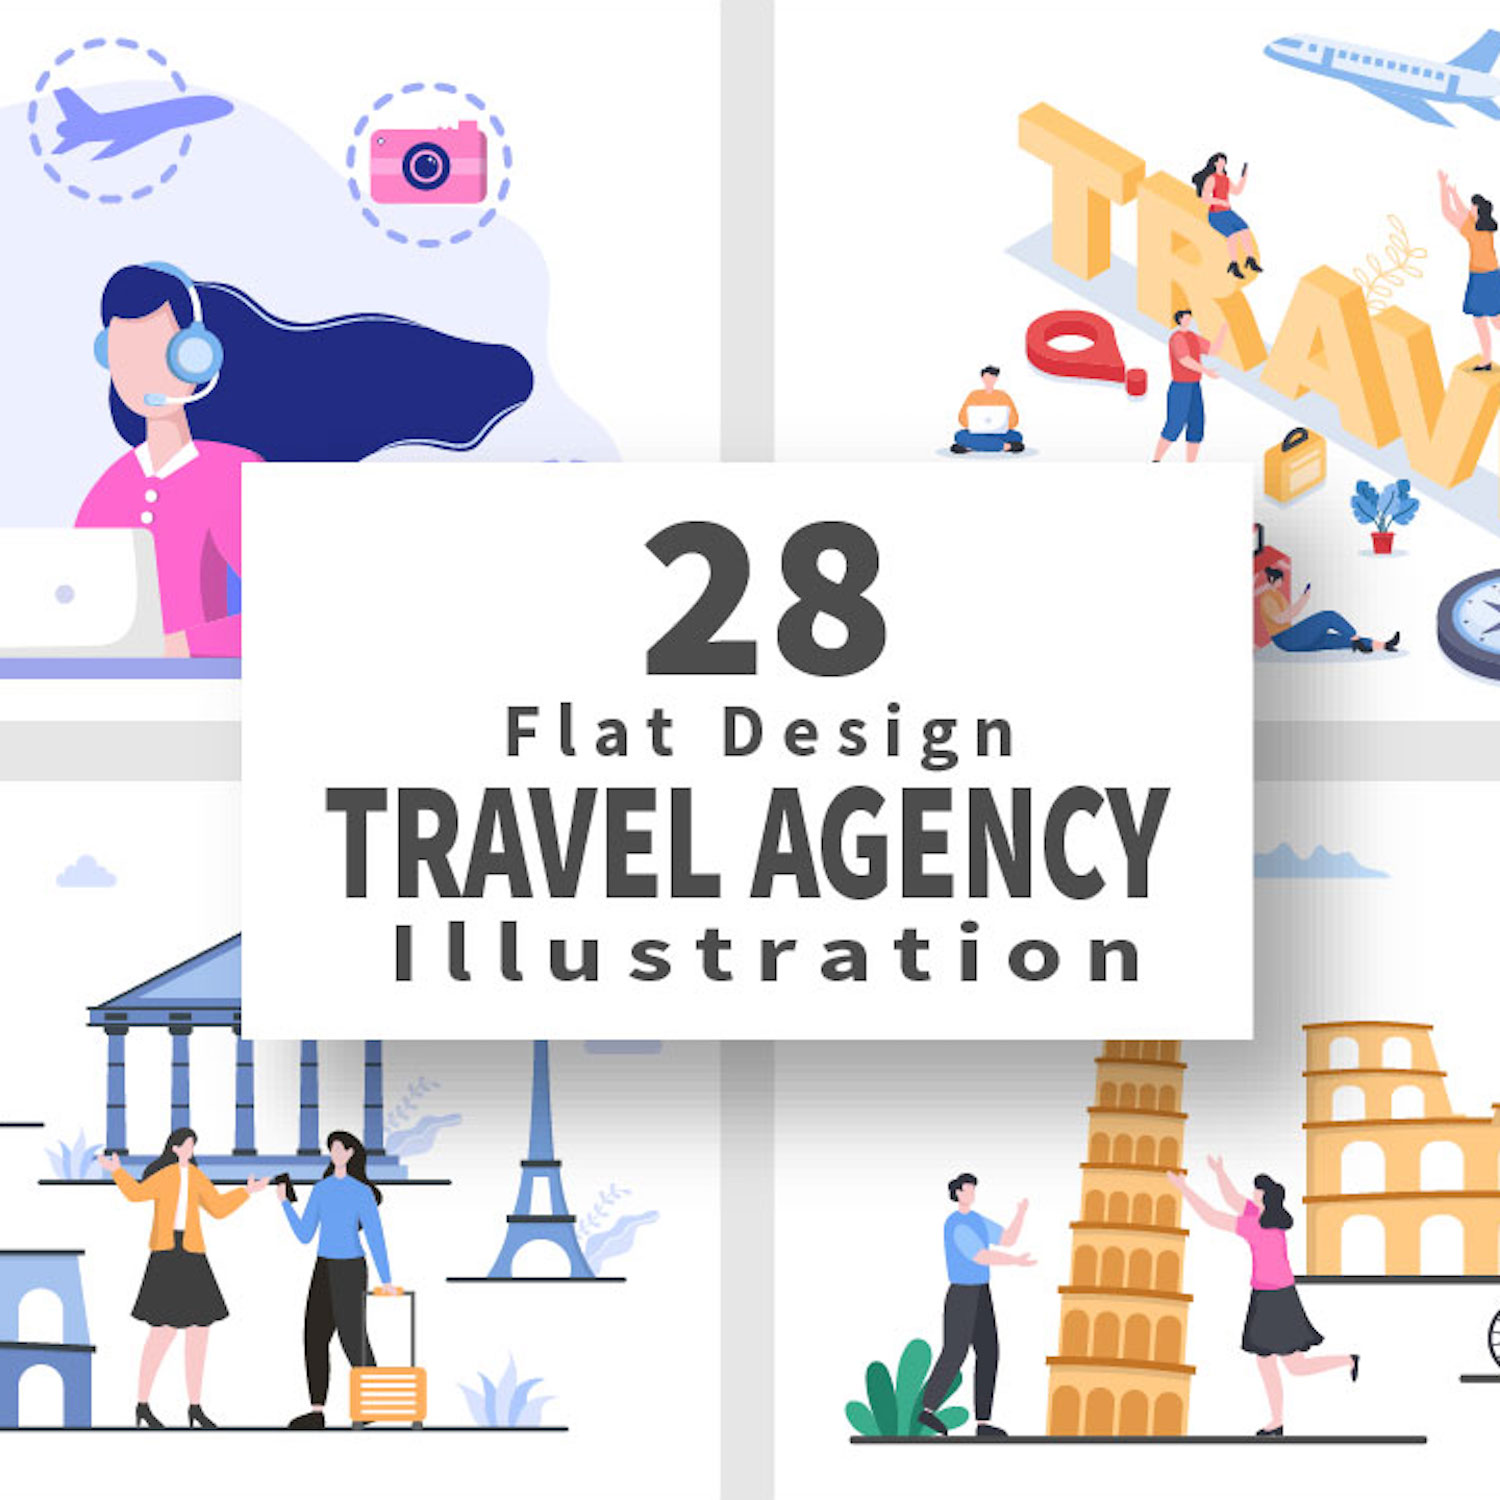 Travel Agency Around The World Vector Illustrations covet image.